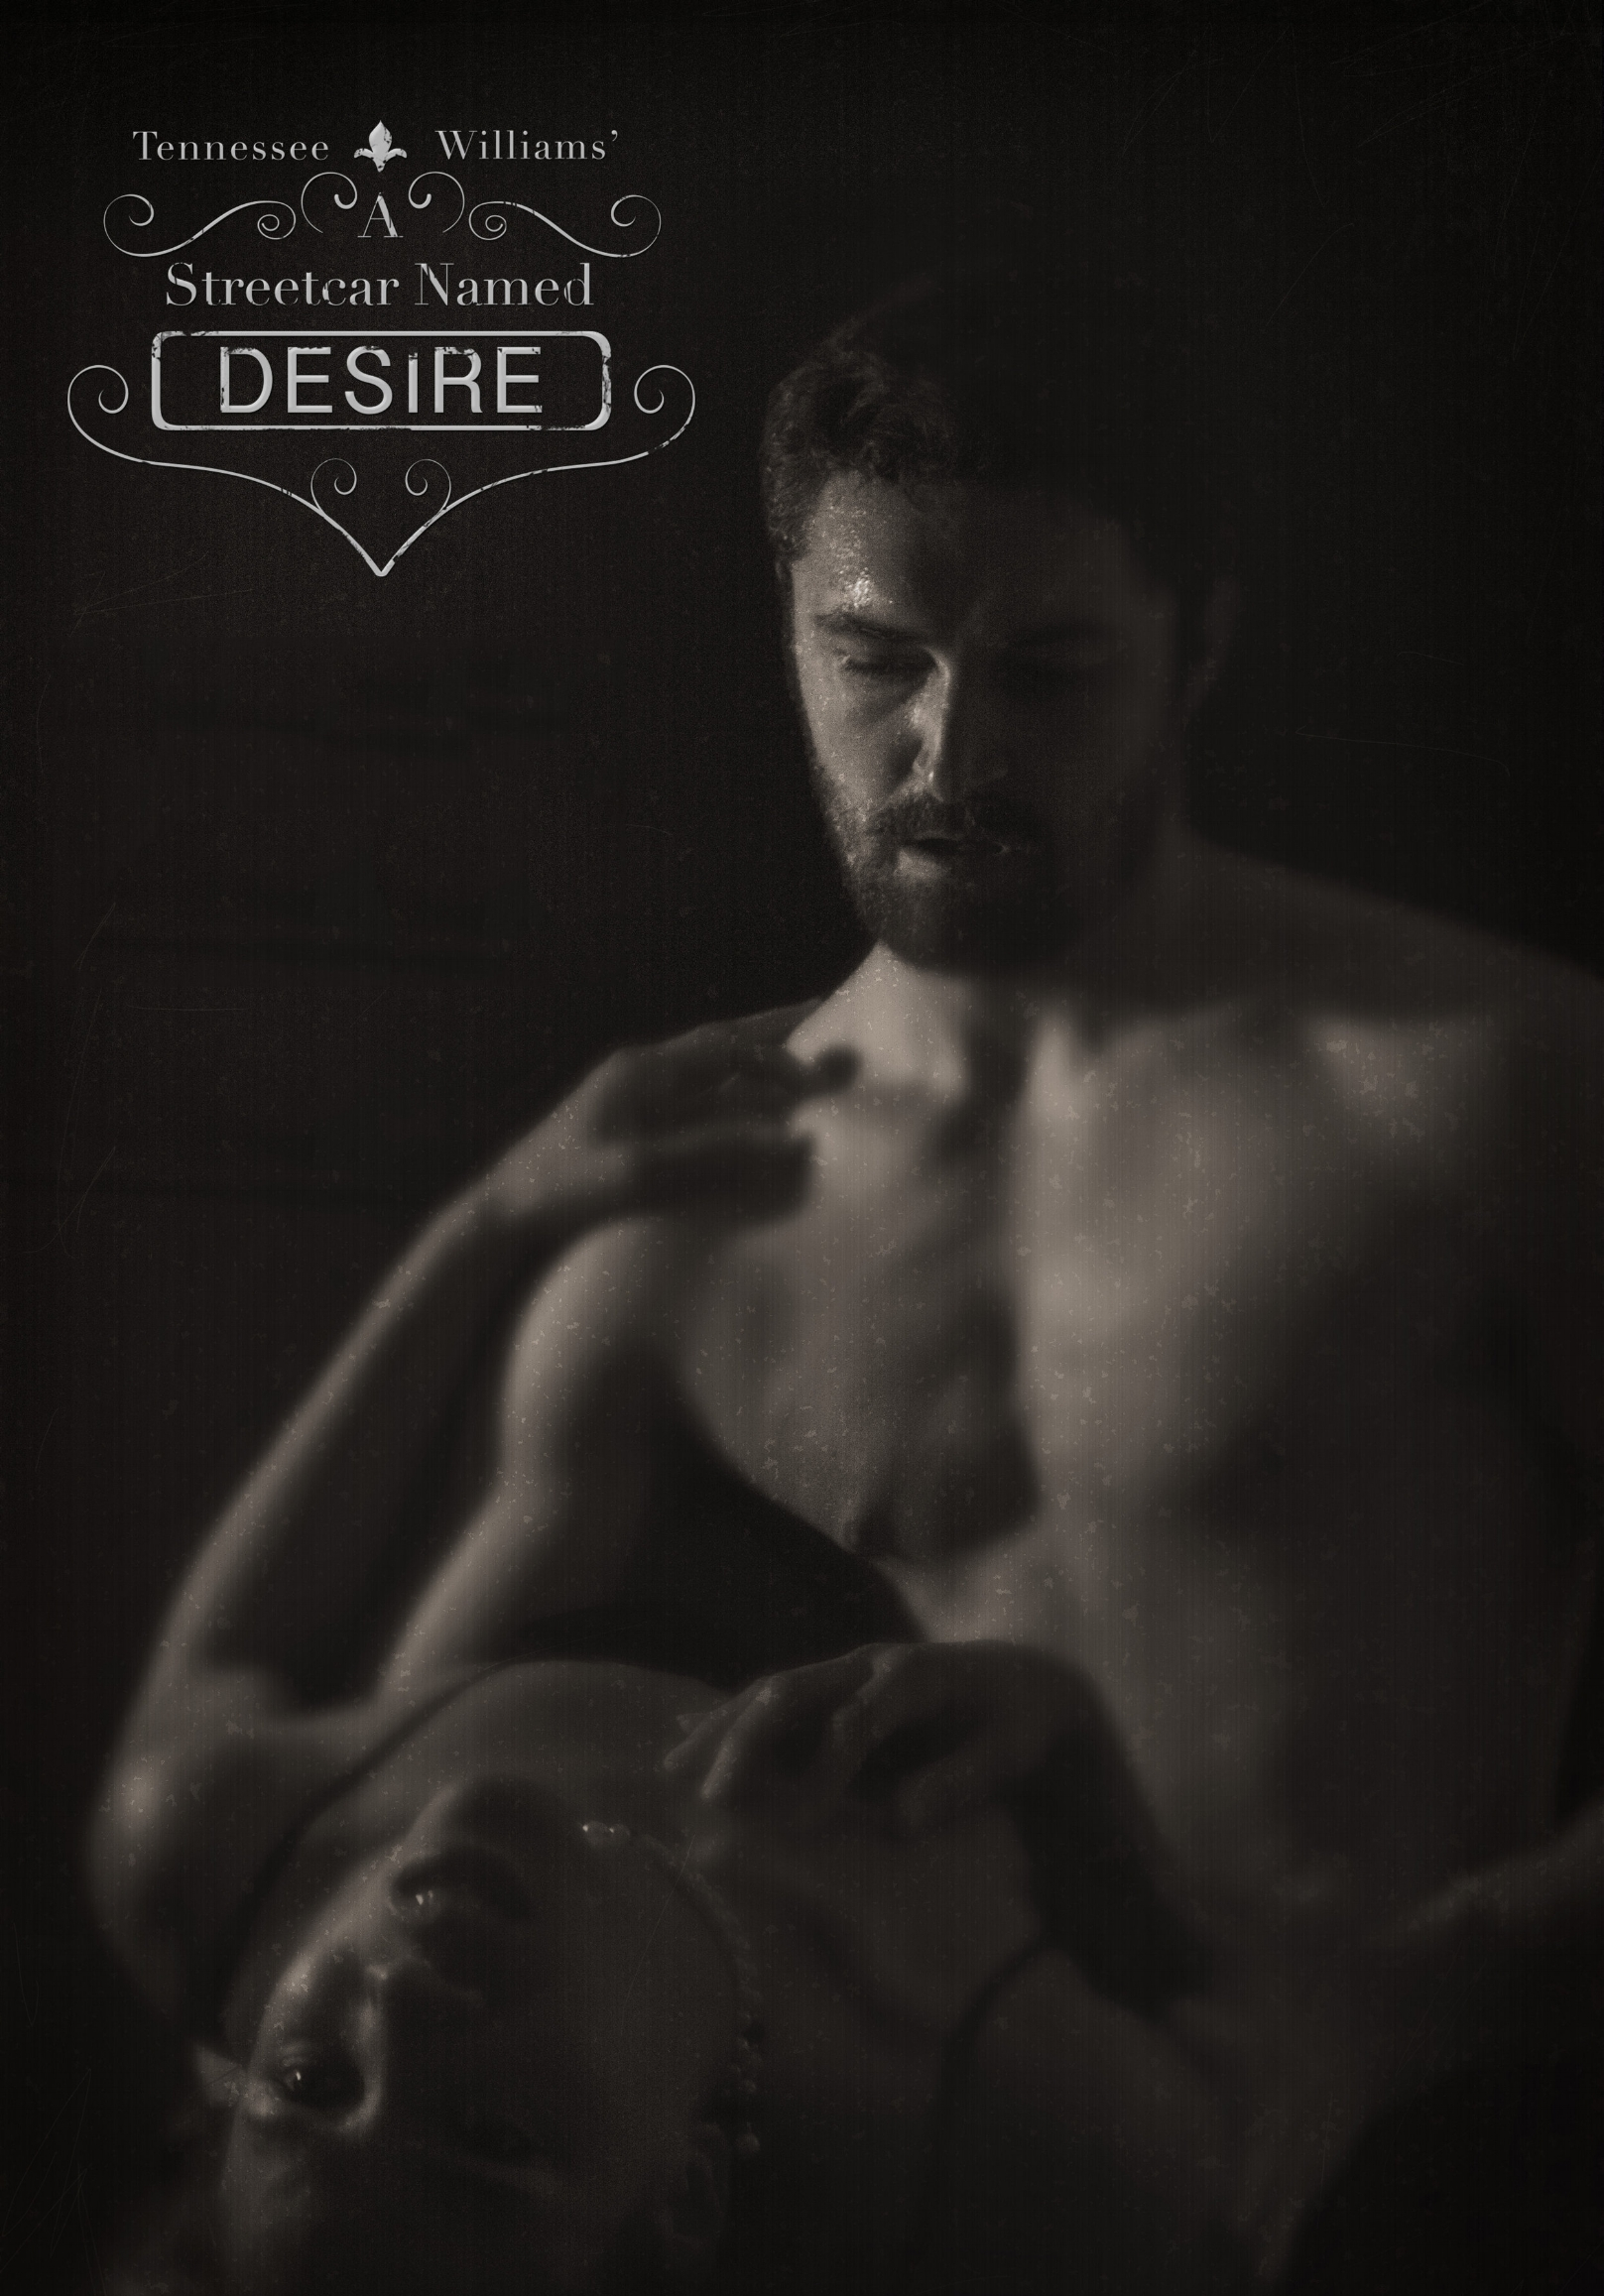 A Streetcar Named Desire - 2014 Directed by Aaron Reese Boseman & Chris Jackson